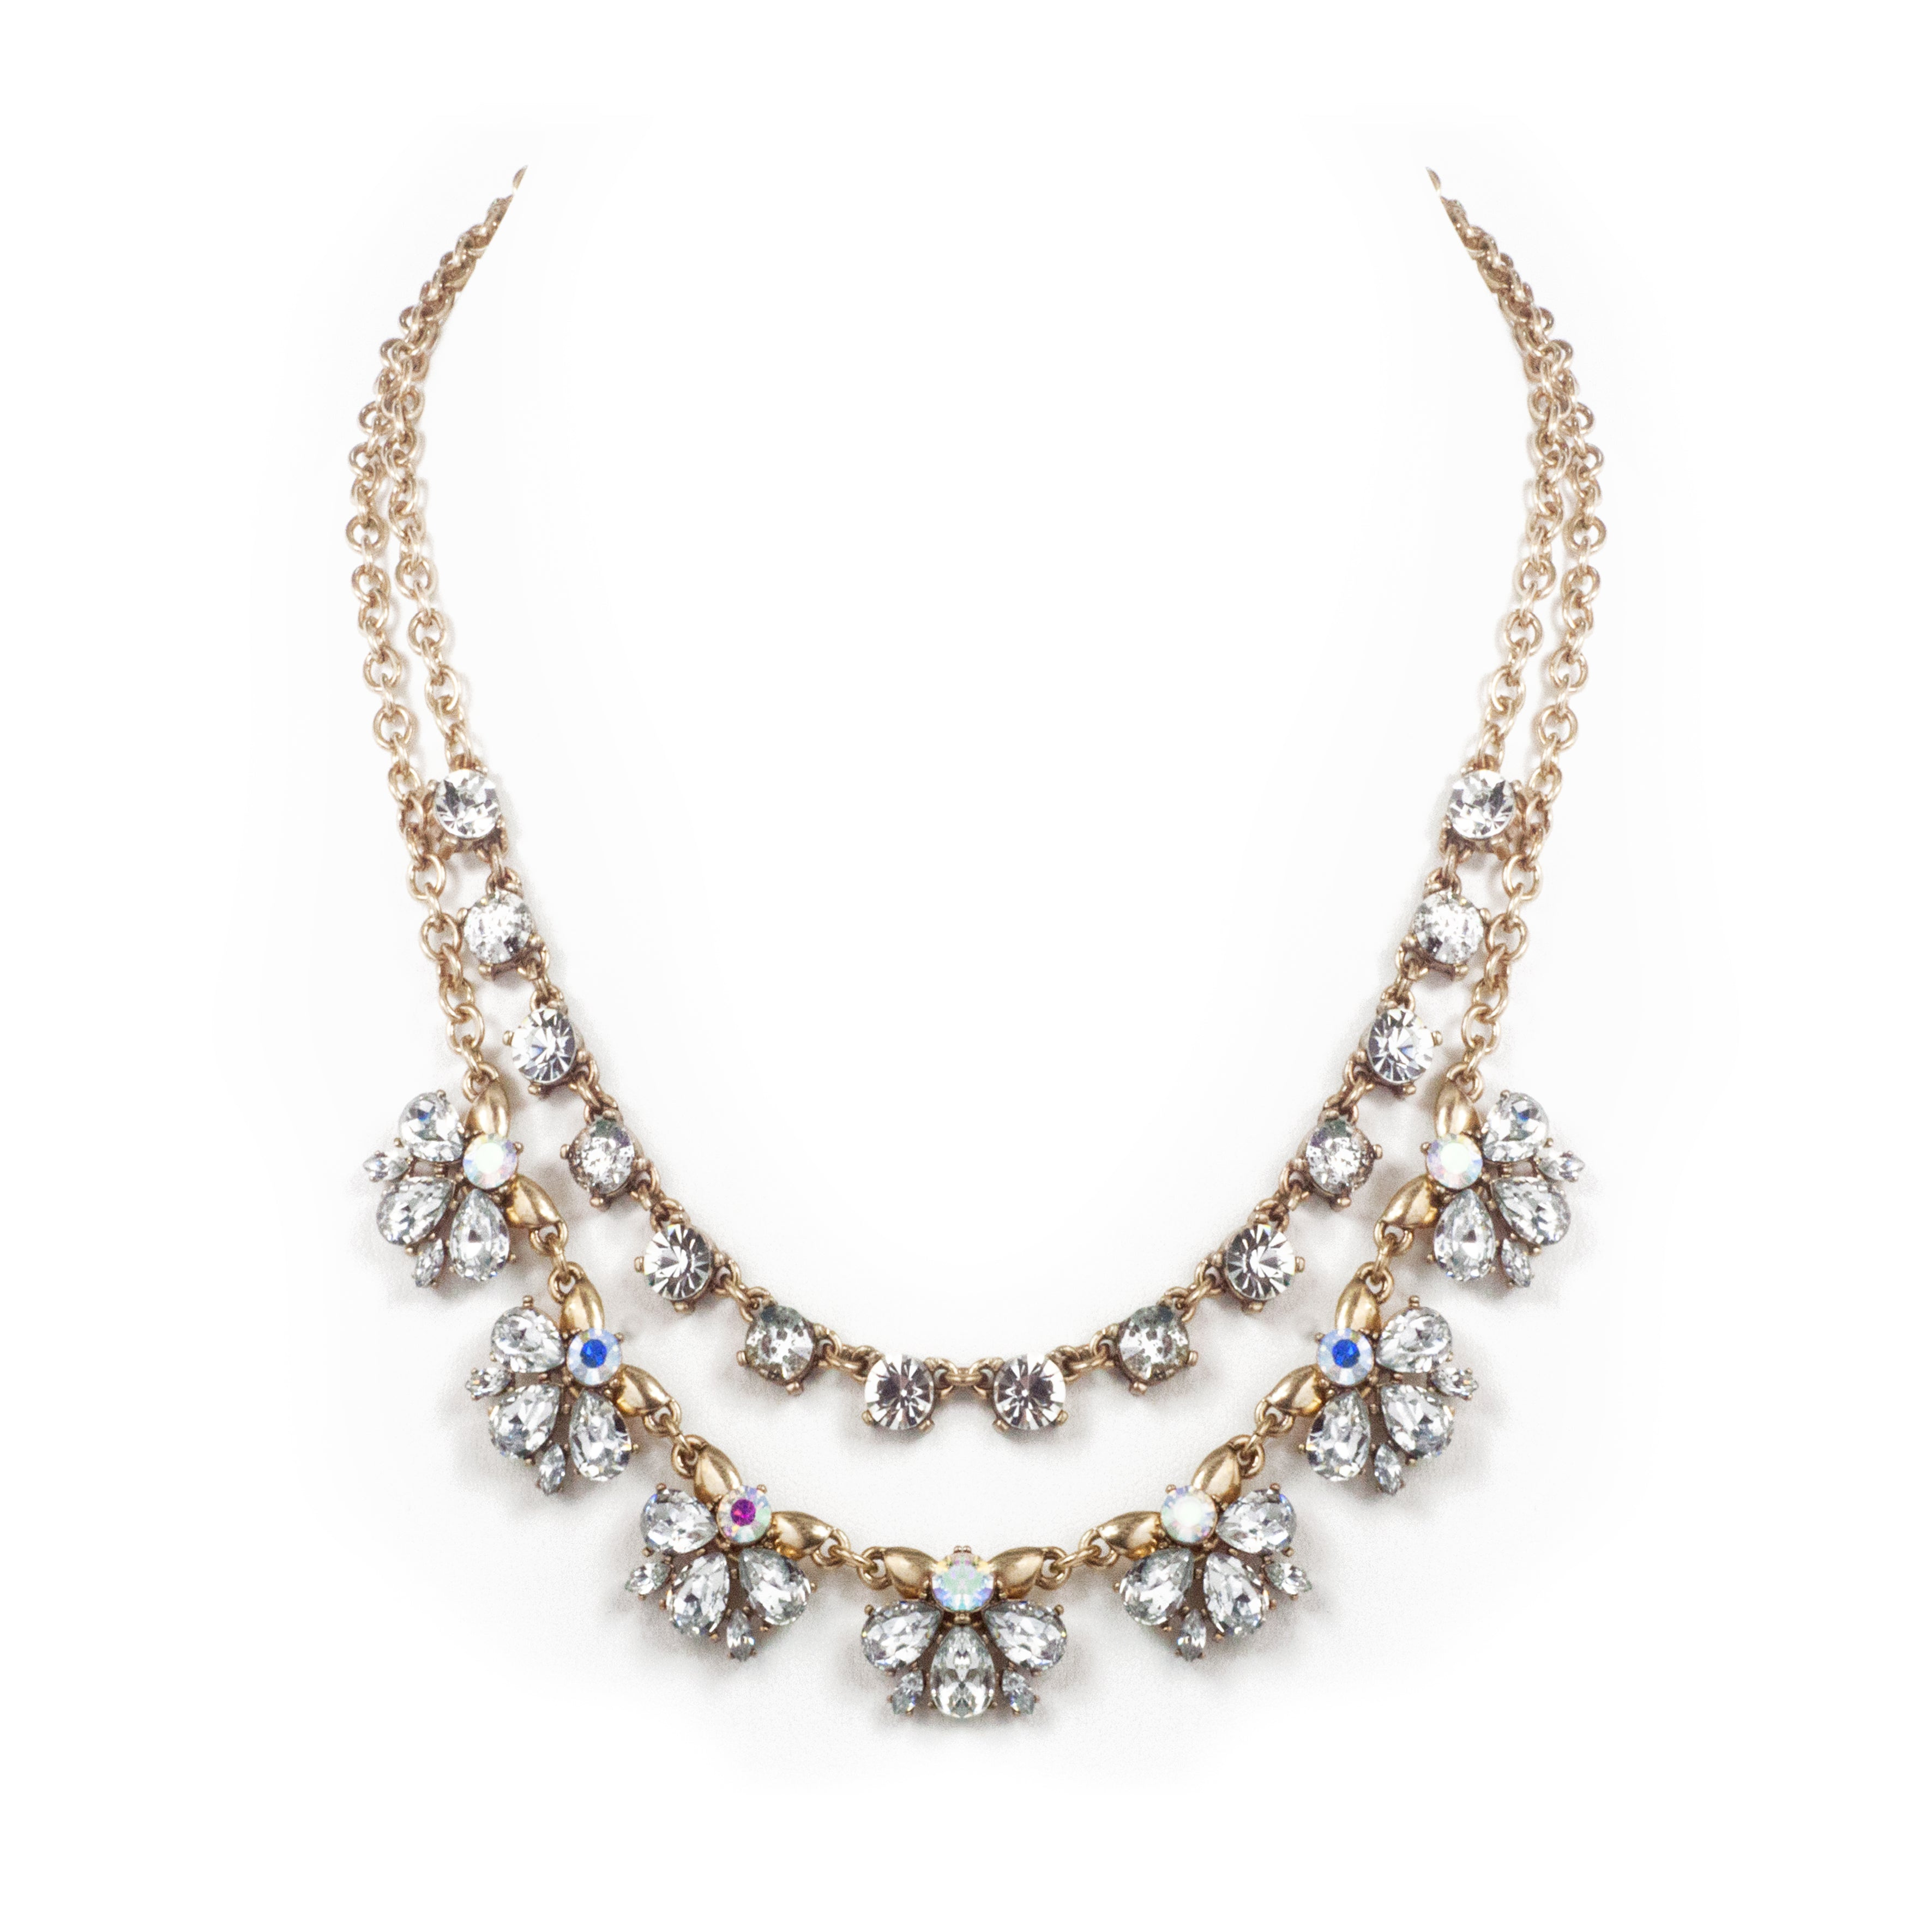 Spring Vivid Edition Double Layered Statement Necklace